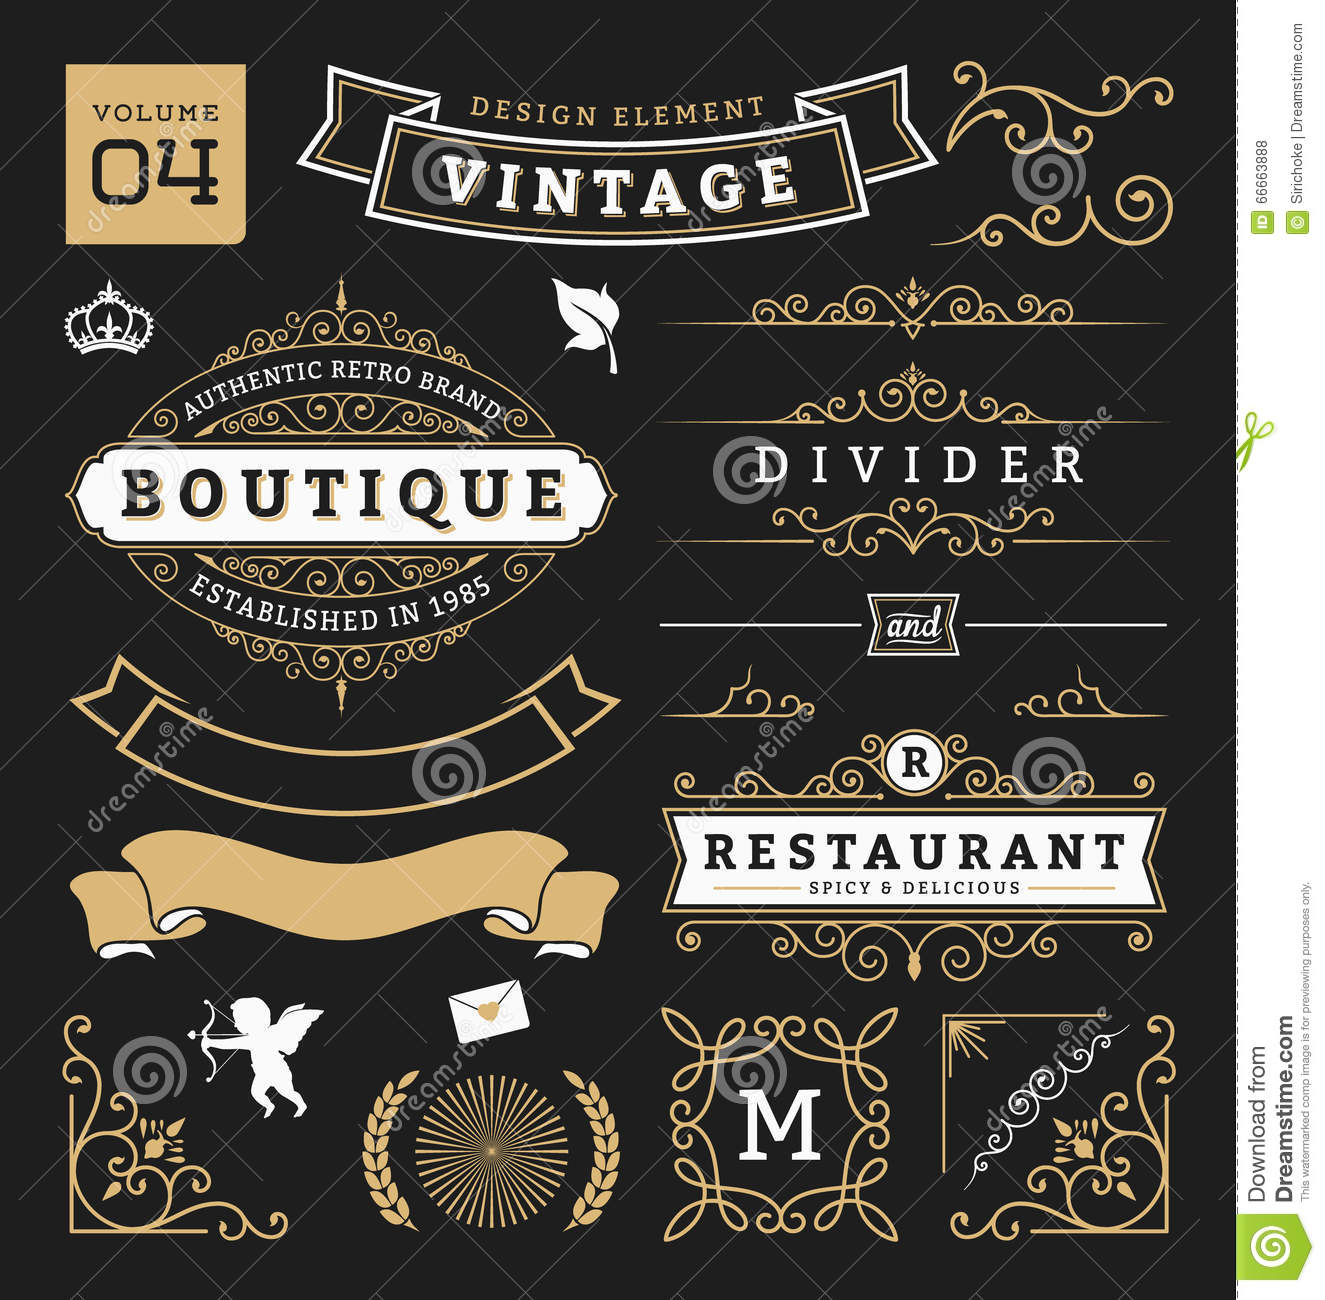 Vintage Design Set Of Retro Vintage Graphic Design Elements Stock Vector